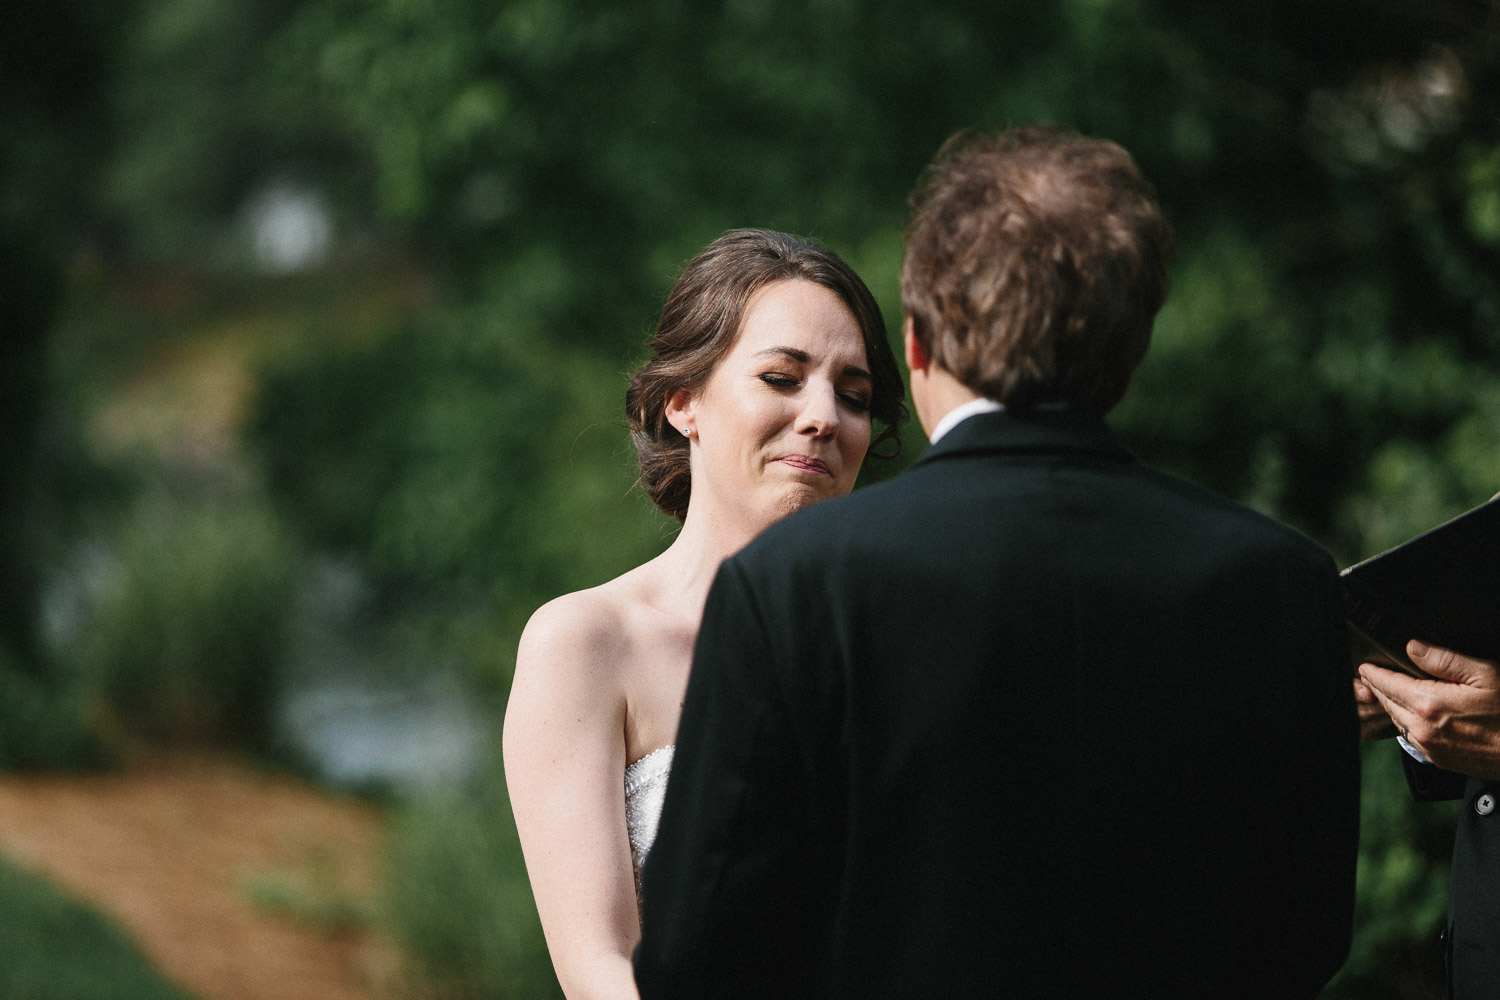 canoe_restaurant_roswell_atlanta_wedding_photographers_1278.jpg